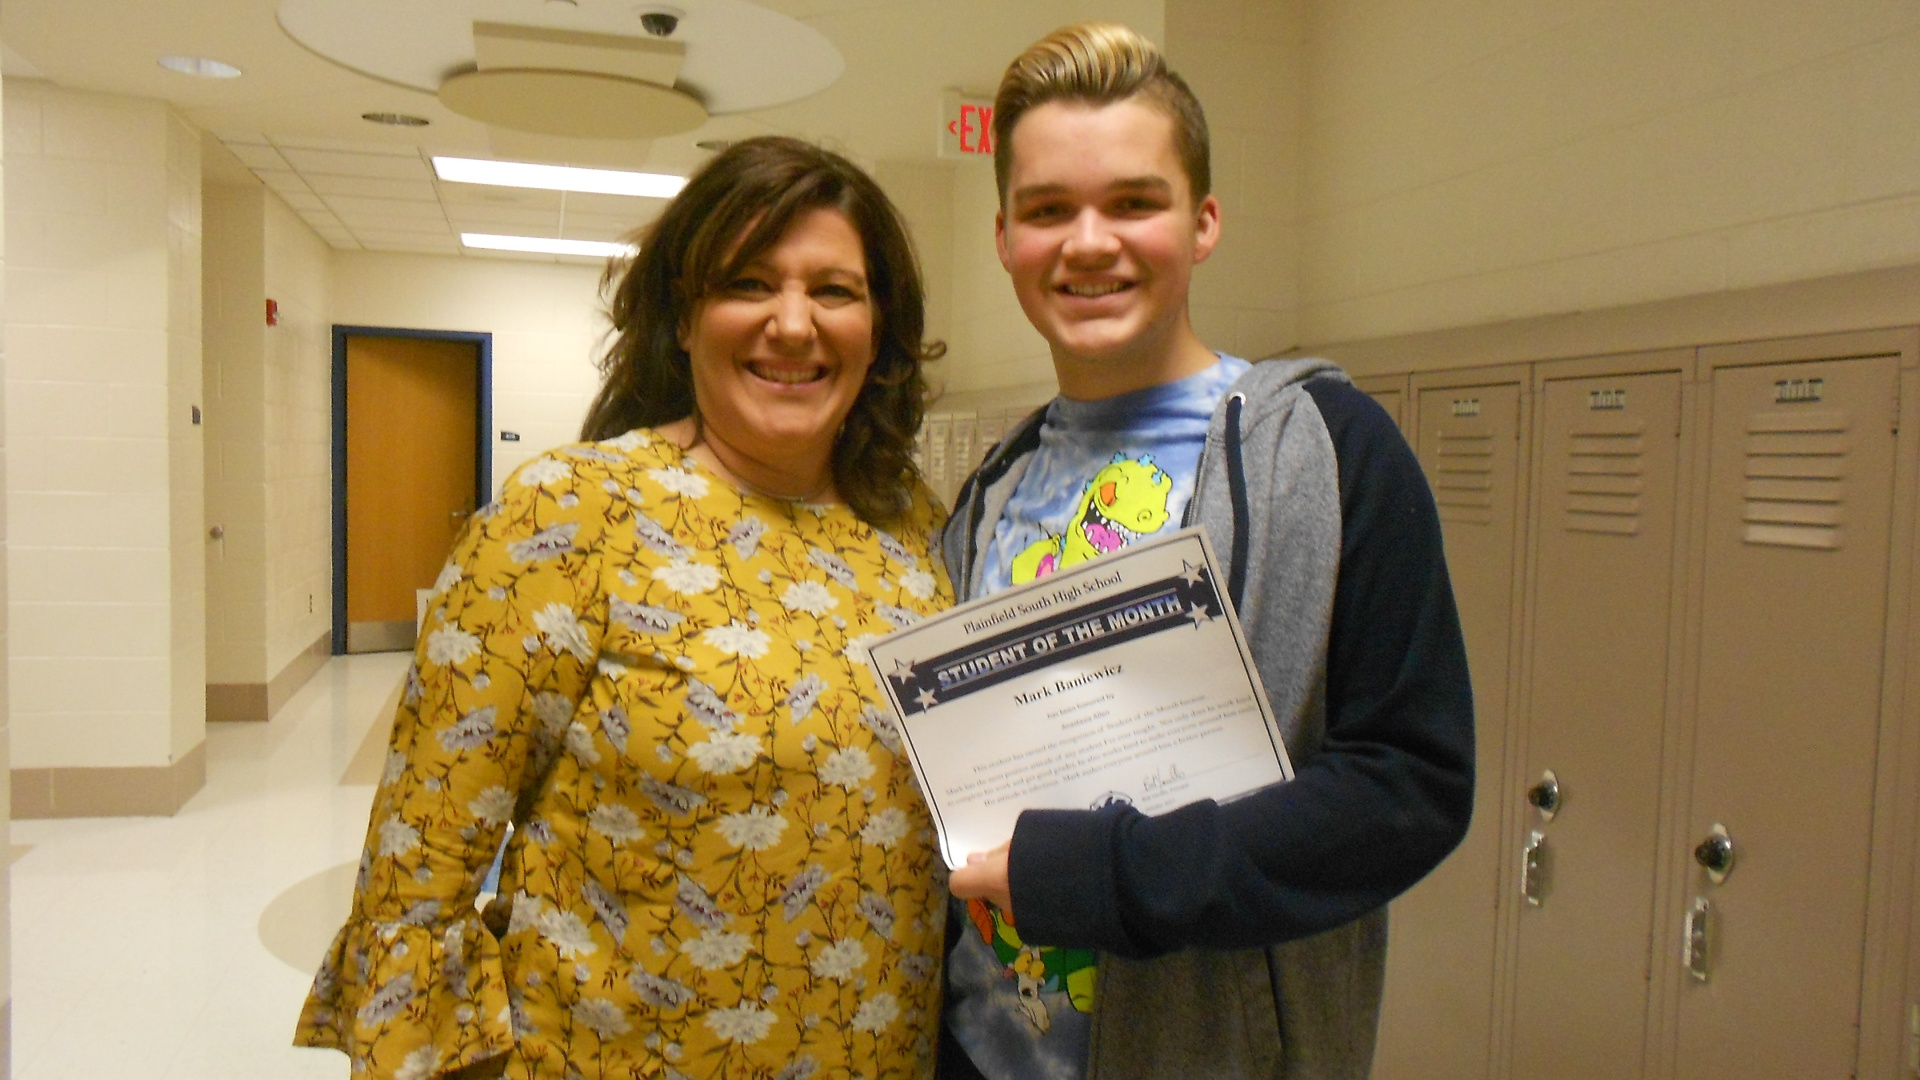 Student of the Month Mark Baniewicz